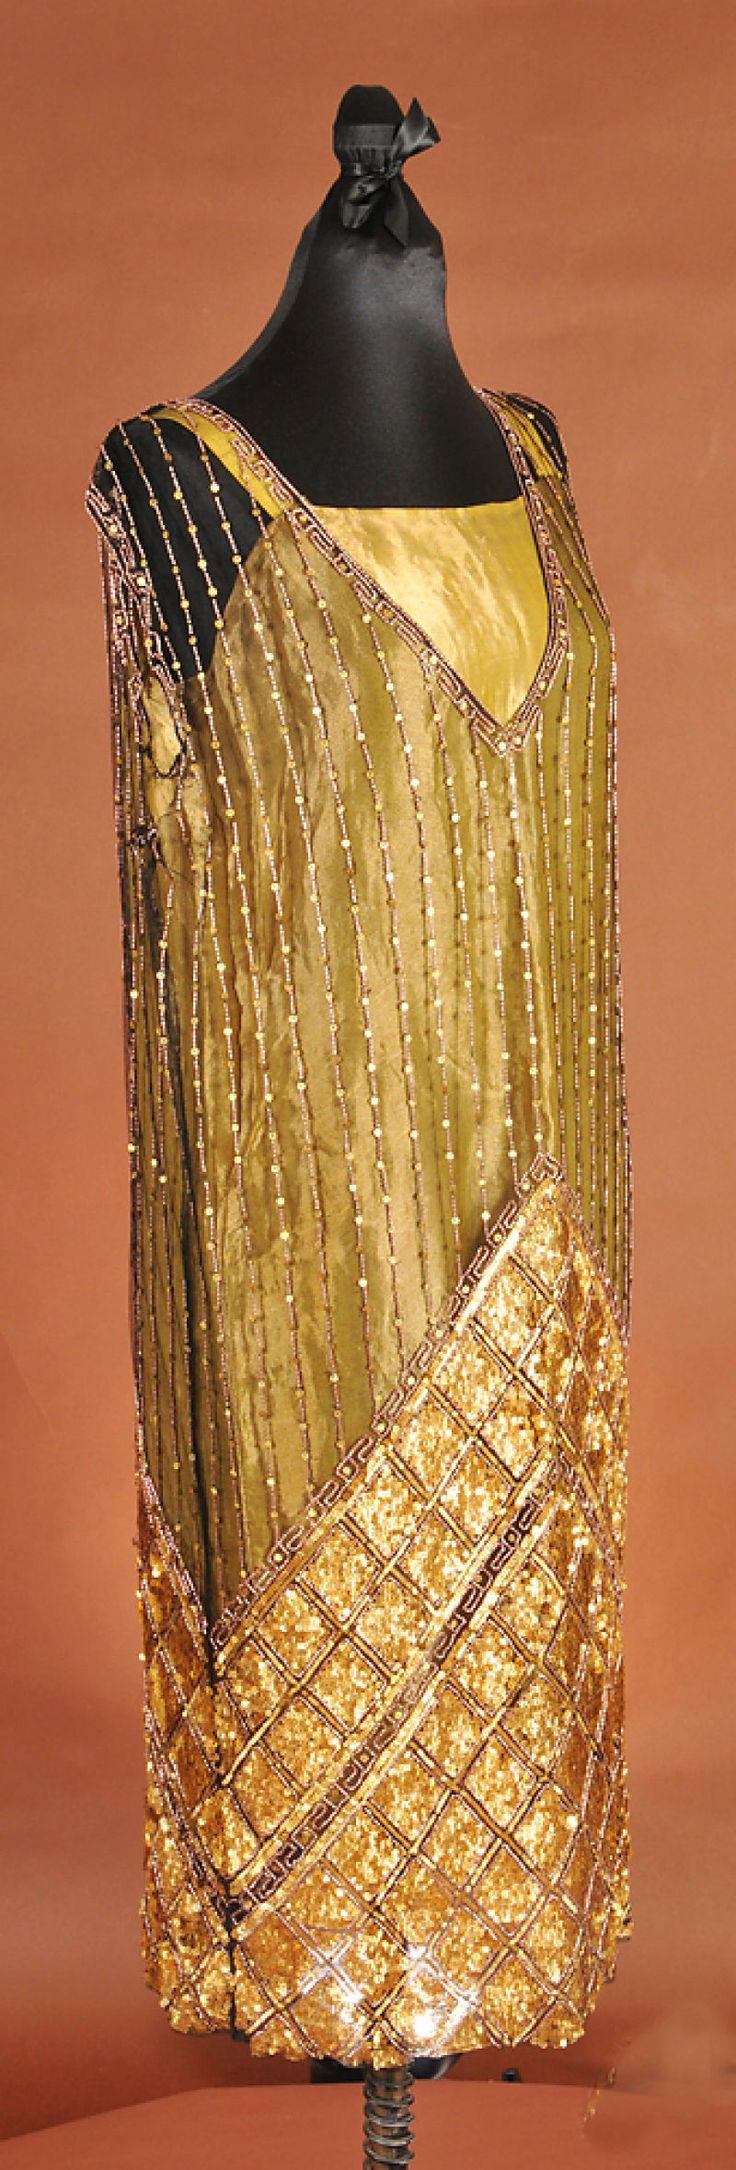 An olive-green sheath with sequin details, circa 1920s, is one of the items that will be on display at the University of Missouri Department of Textile and Apparel Management's History's Closet II fundraising exhibit.